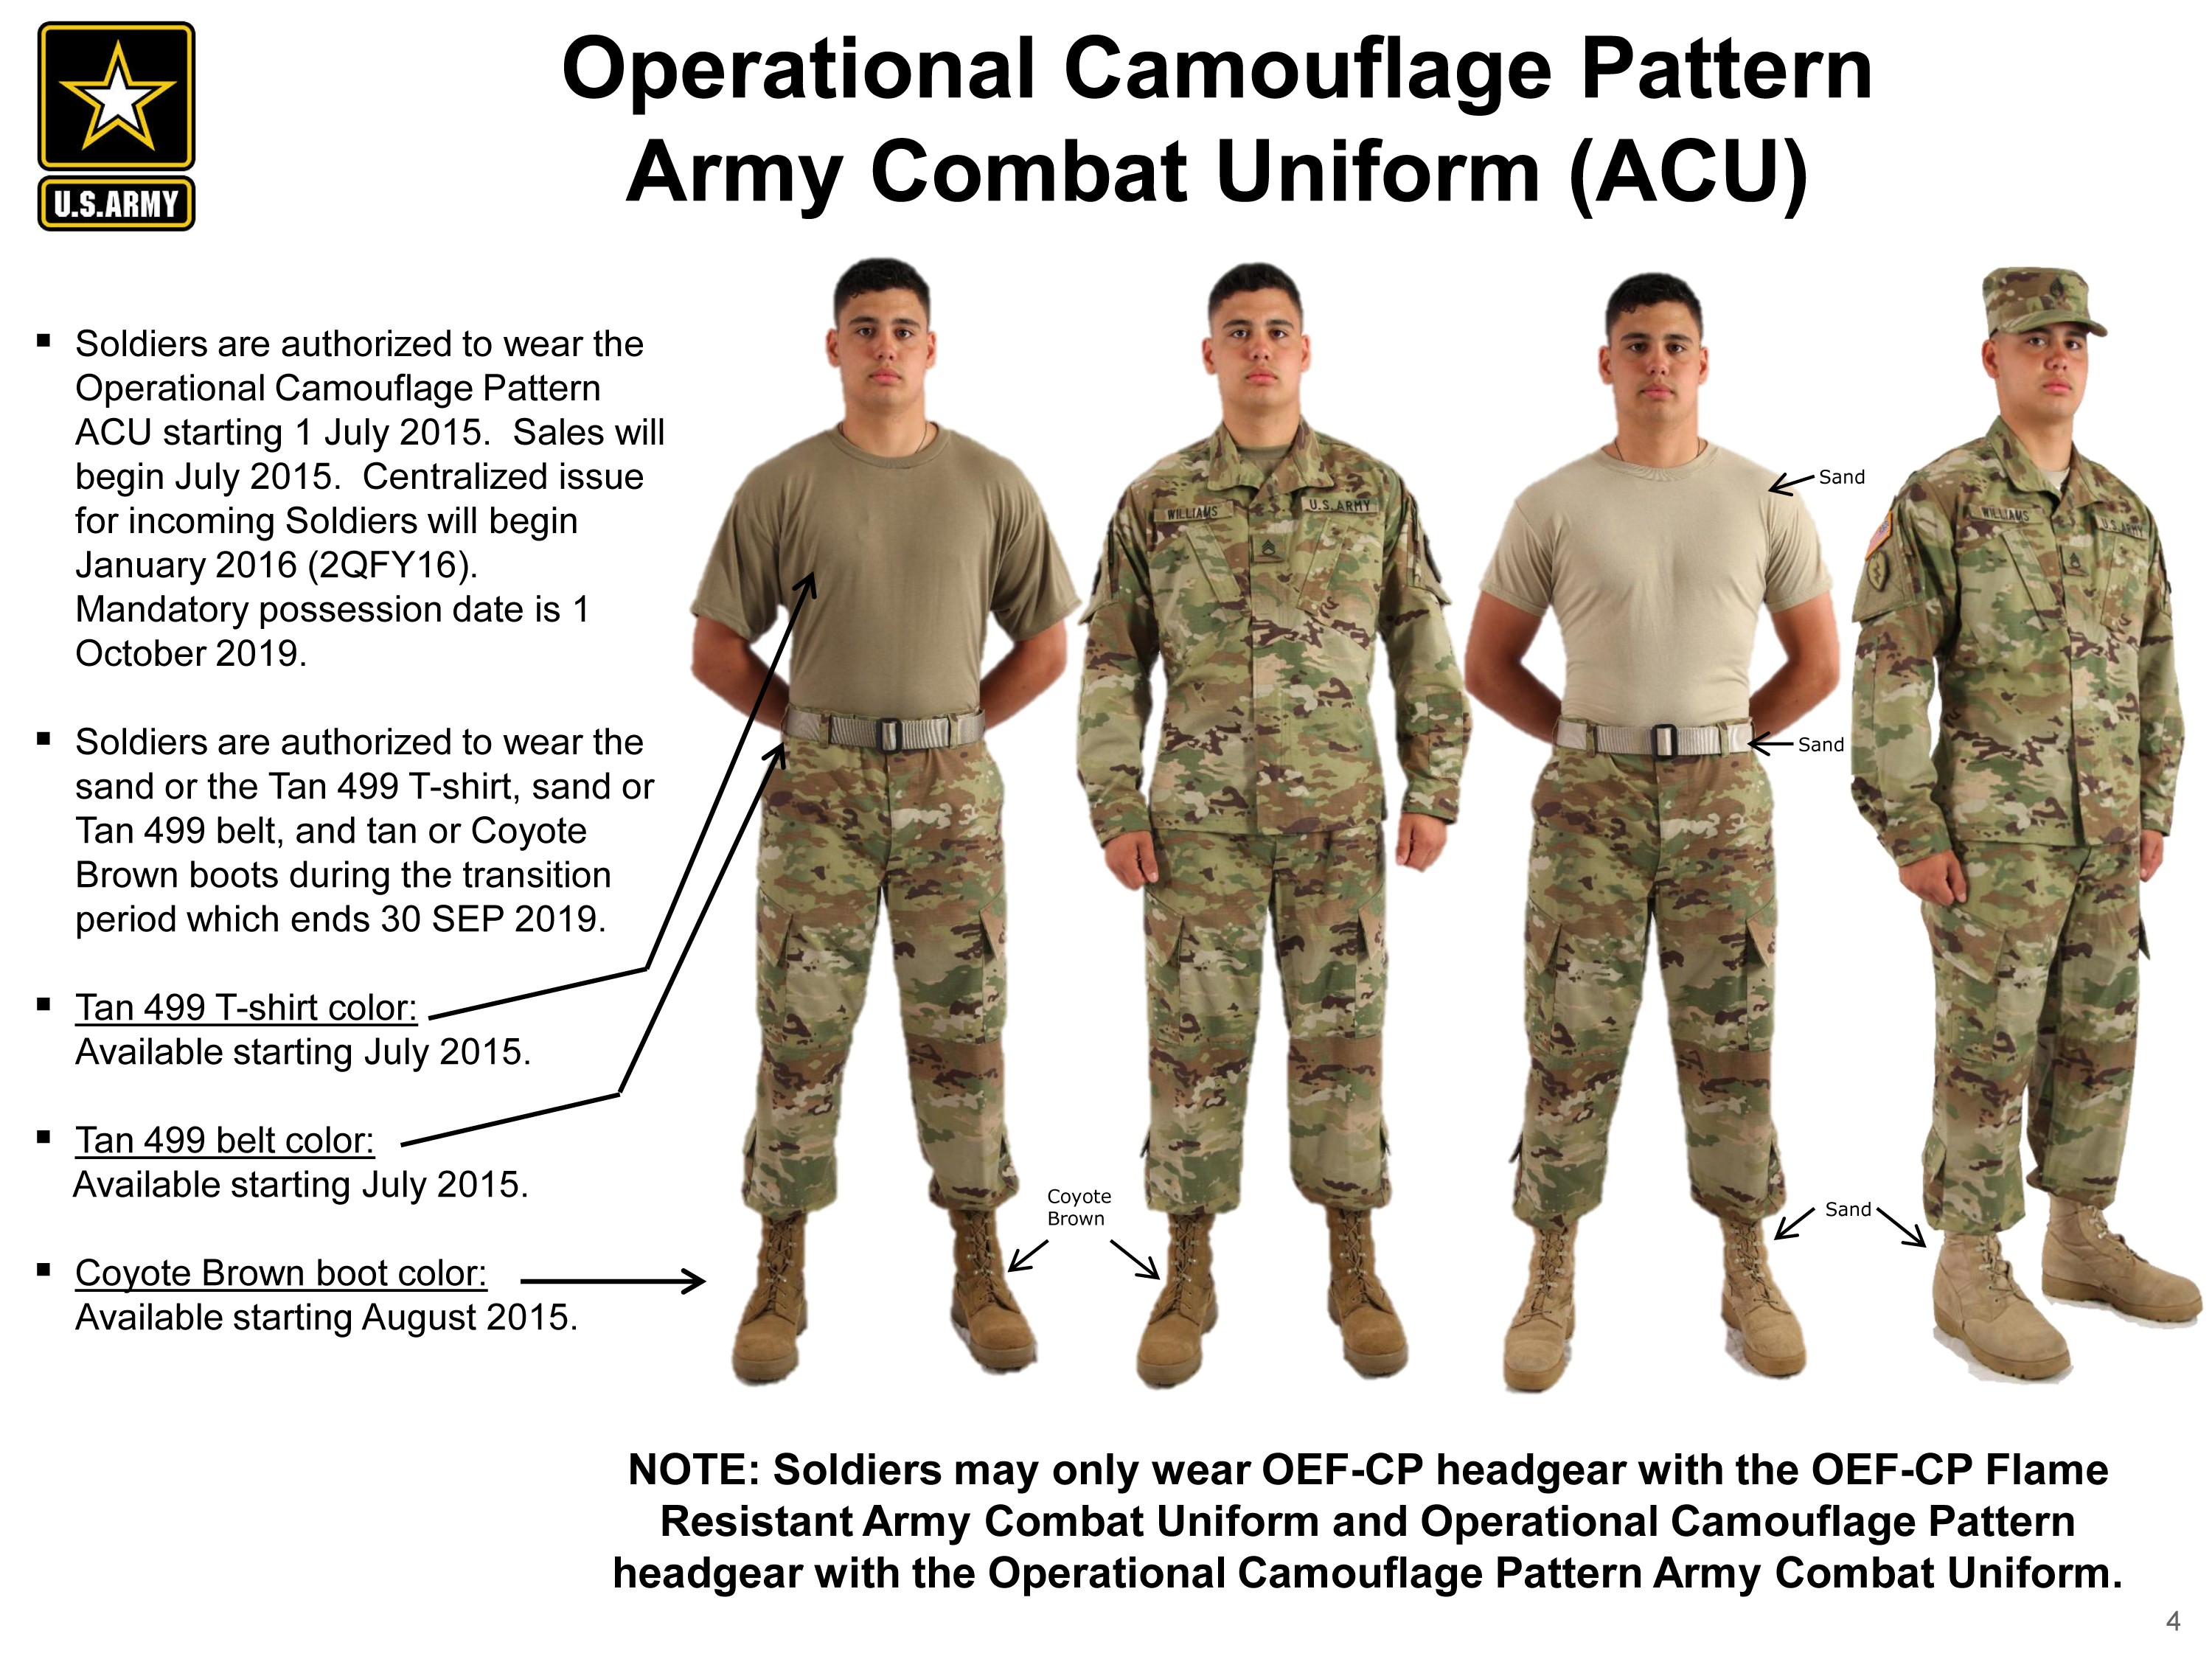 Operational Camouflage Pattern Army Combat Uniforms